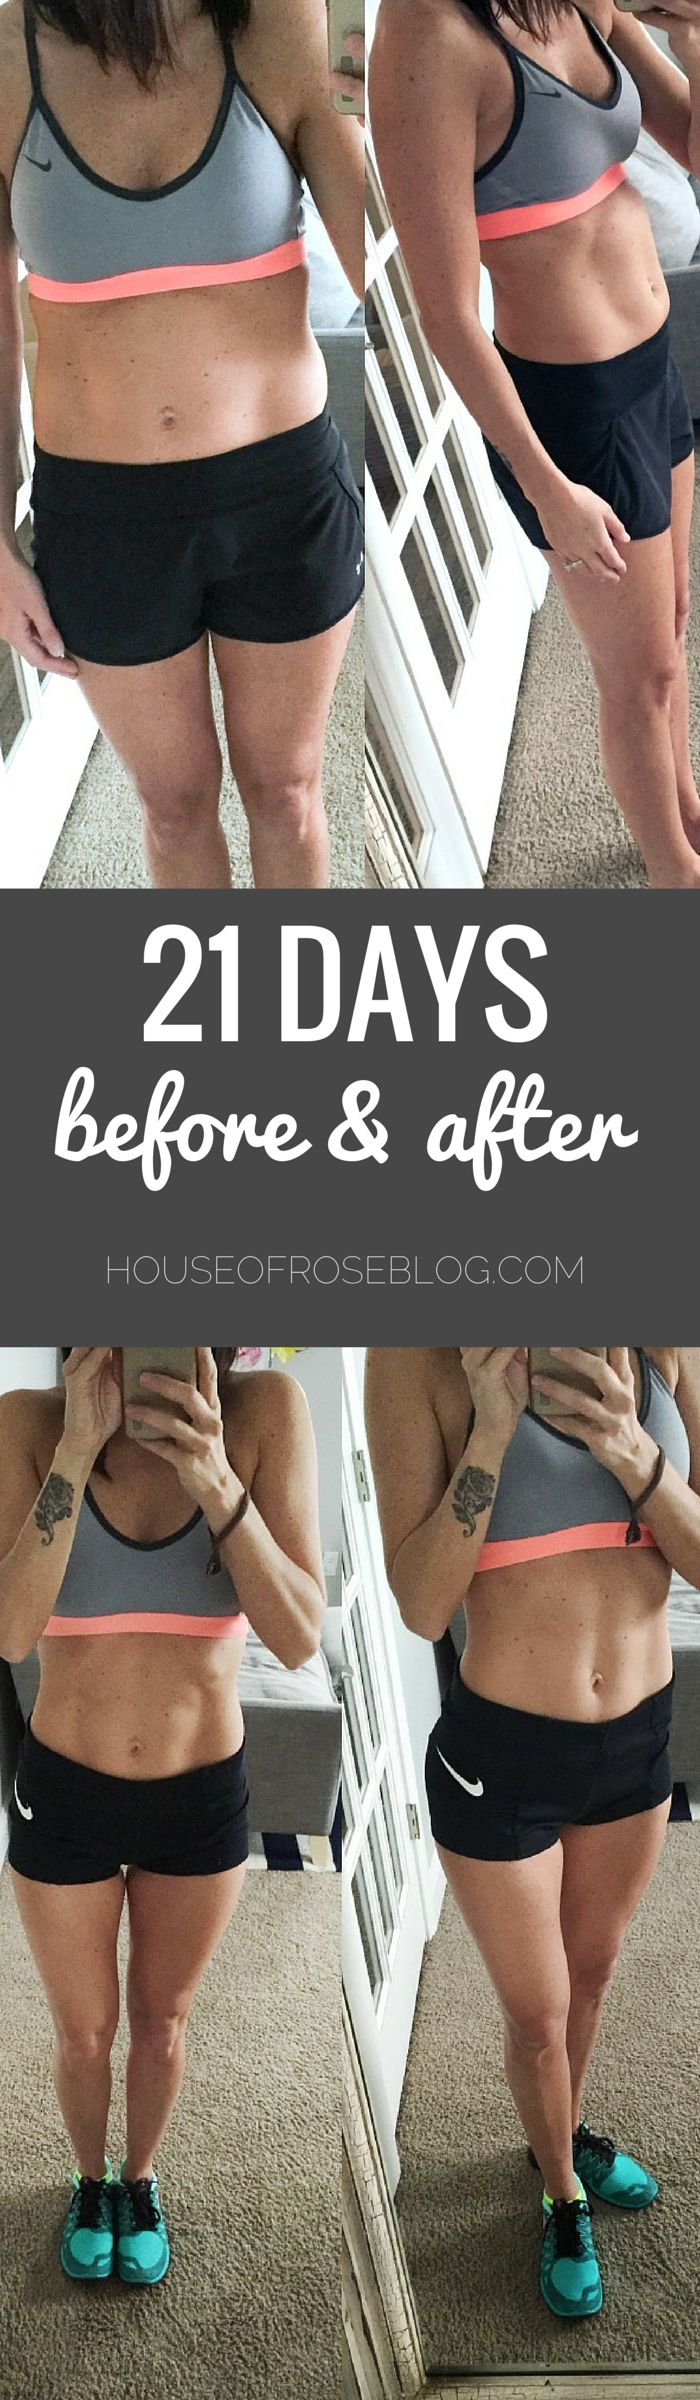 Before & After Pictures Fitness Challenge - 21 Day Fix ...